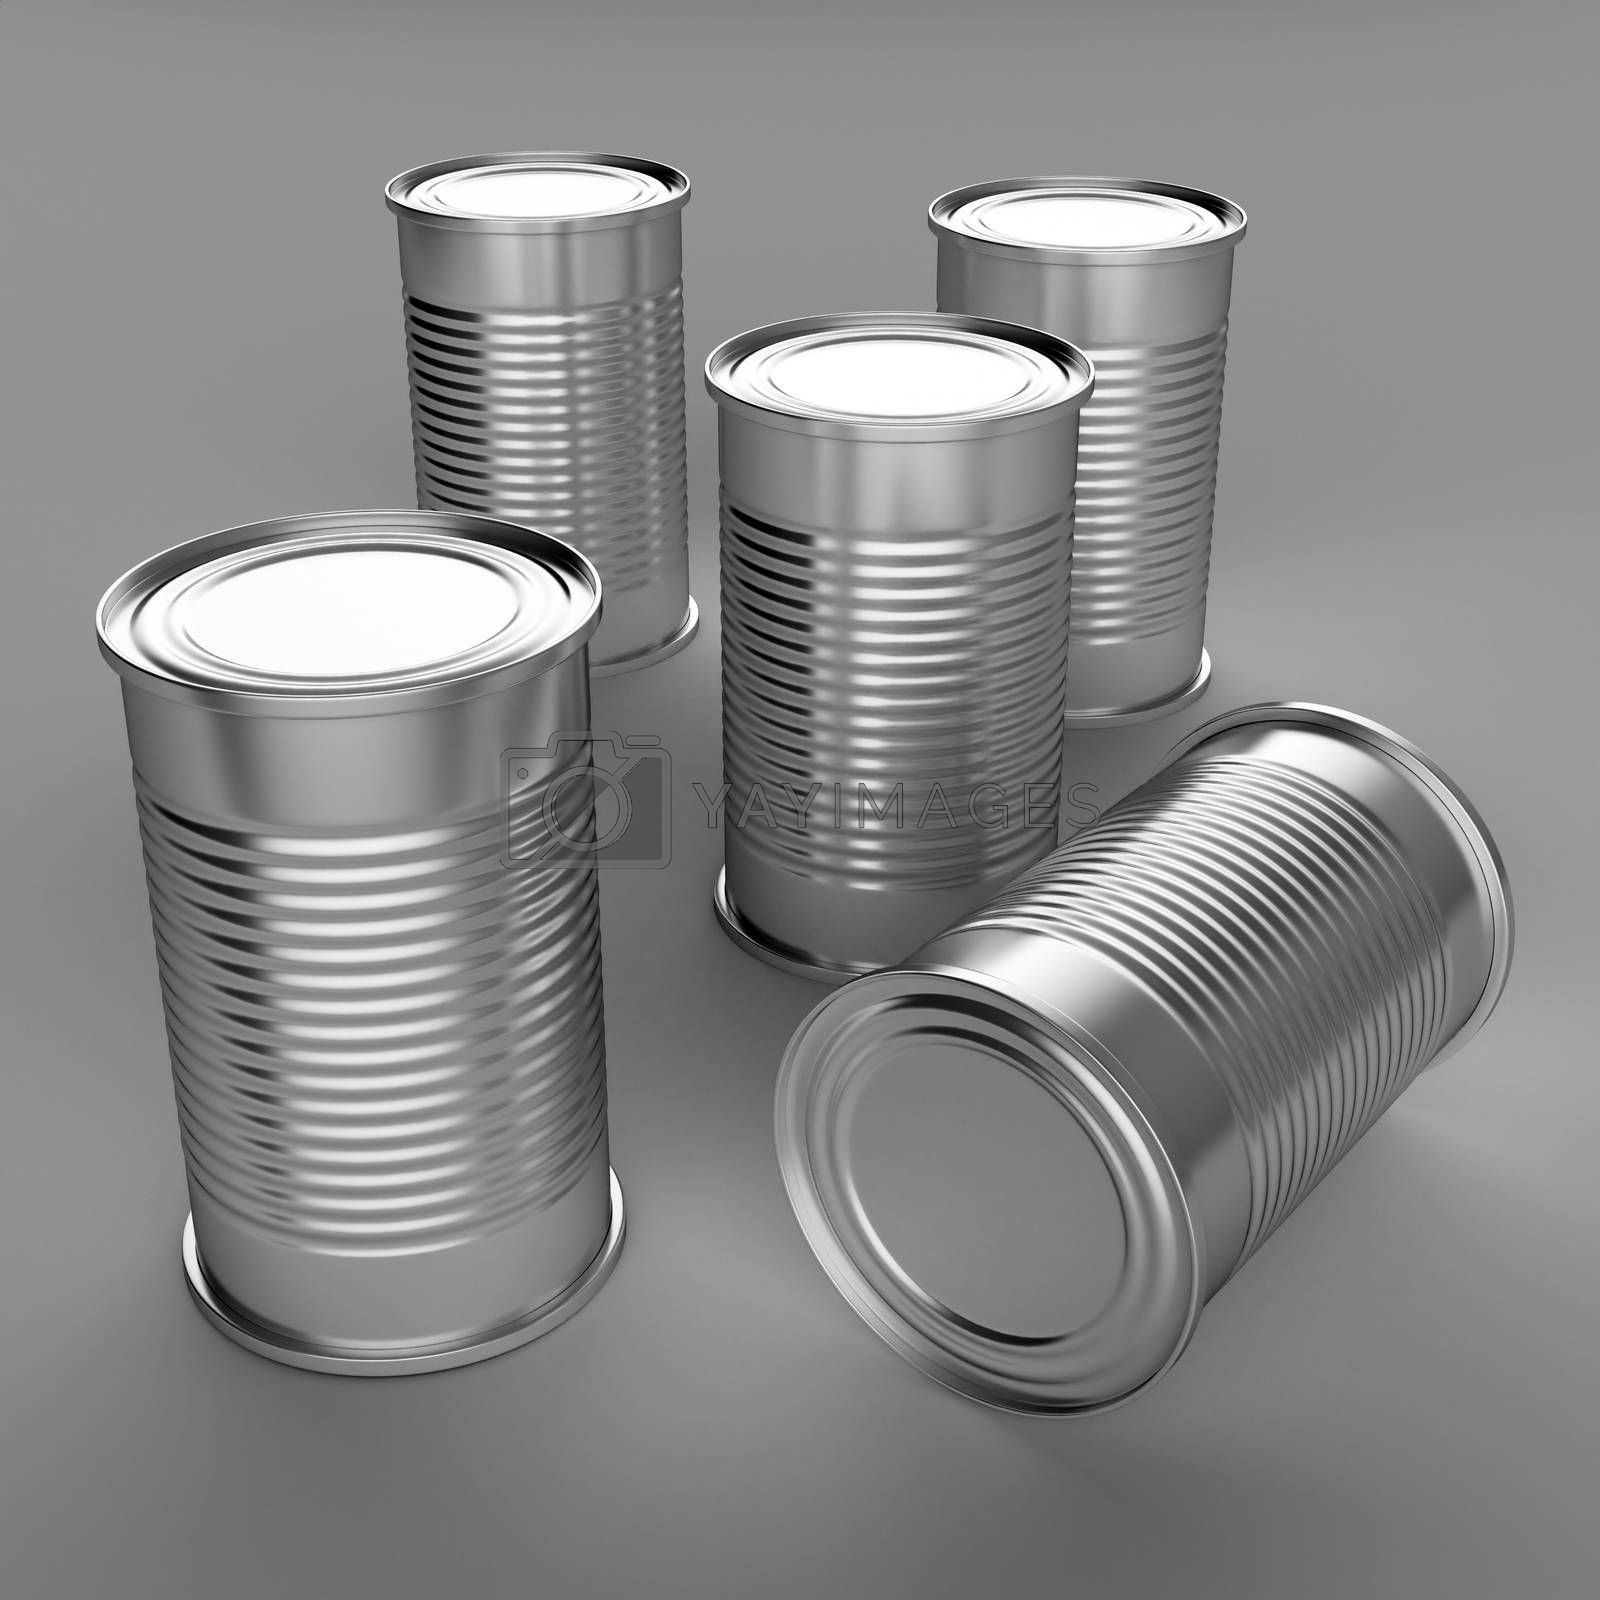 3D computer illustration with global illumination enabled